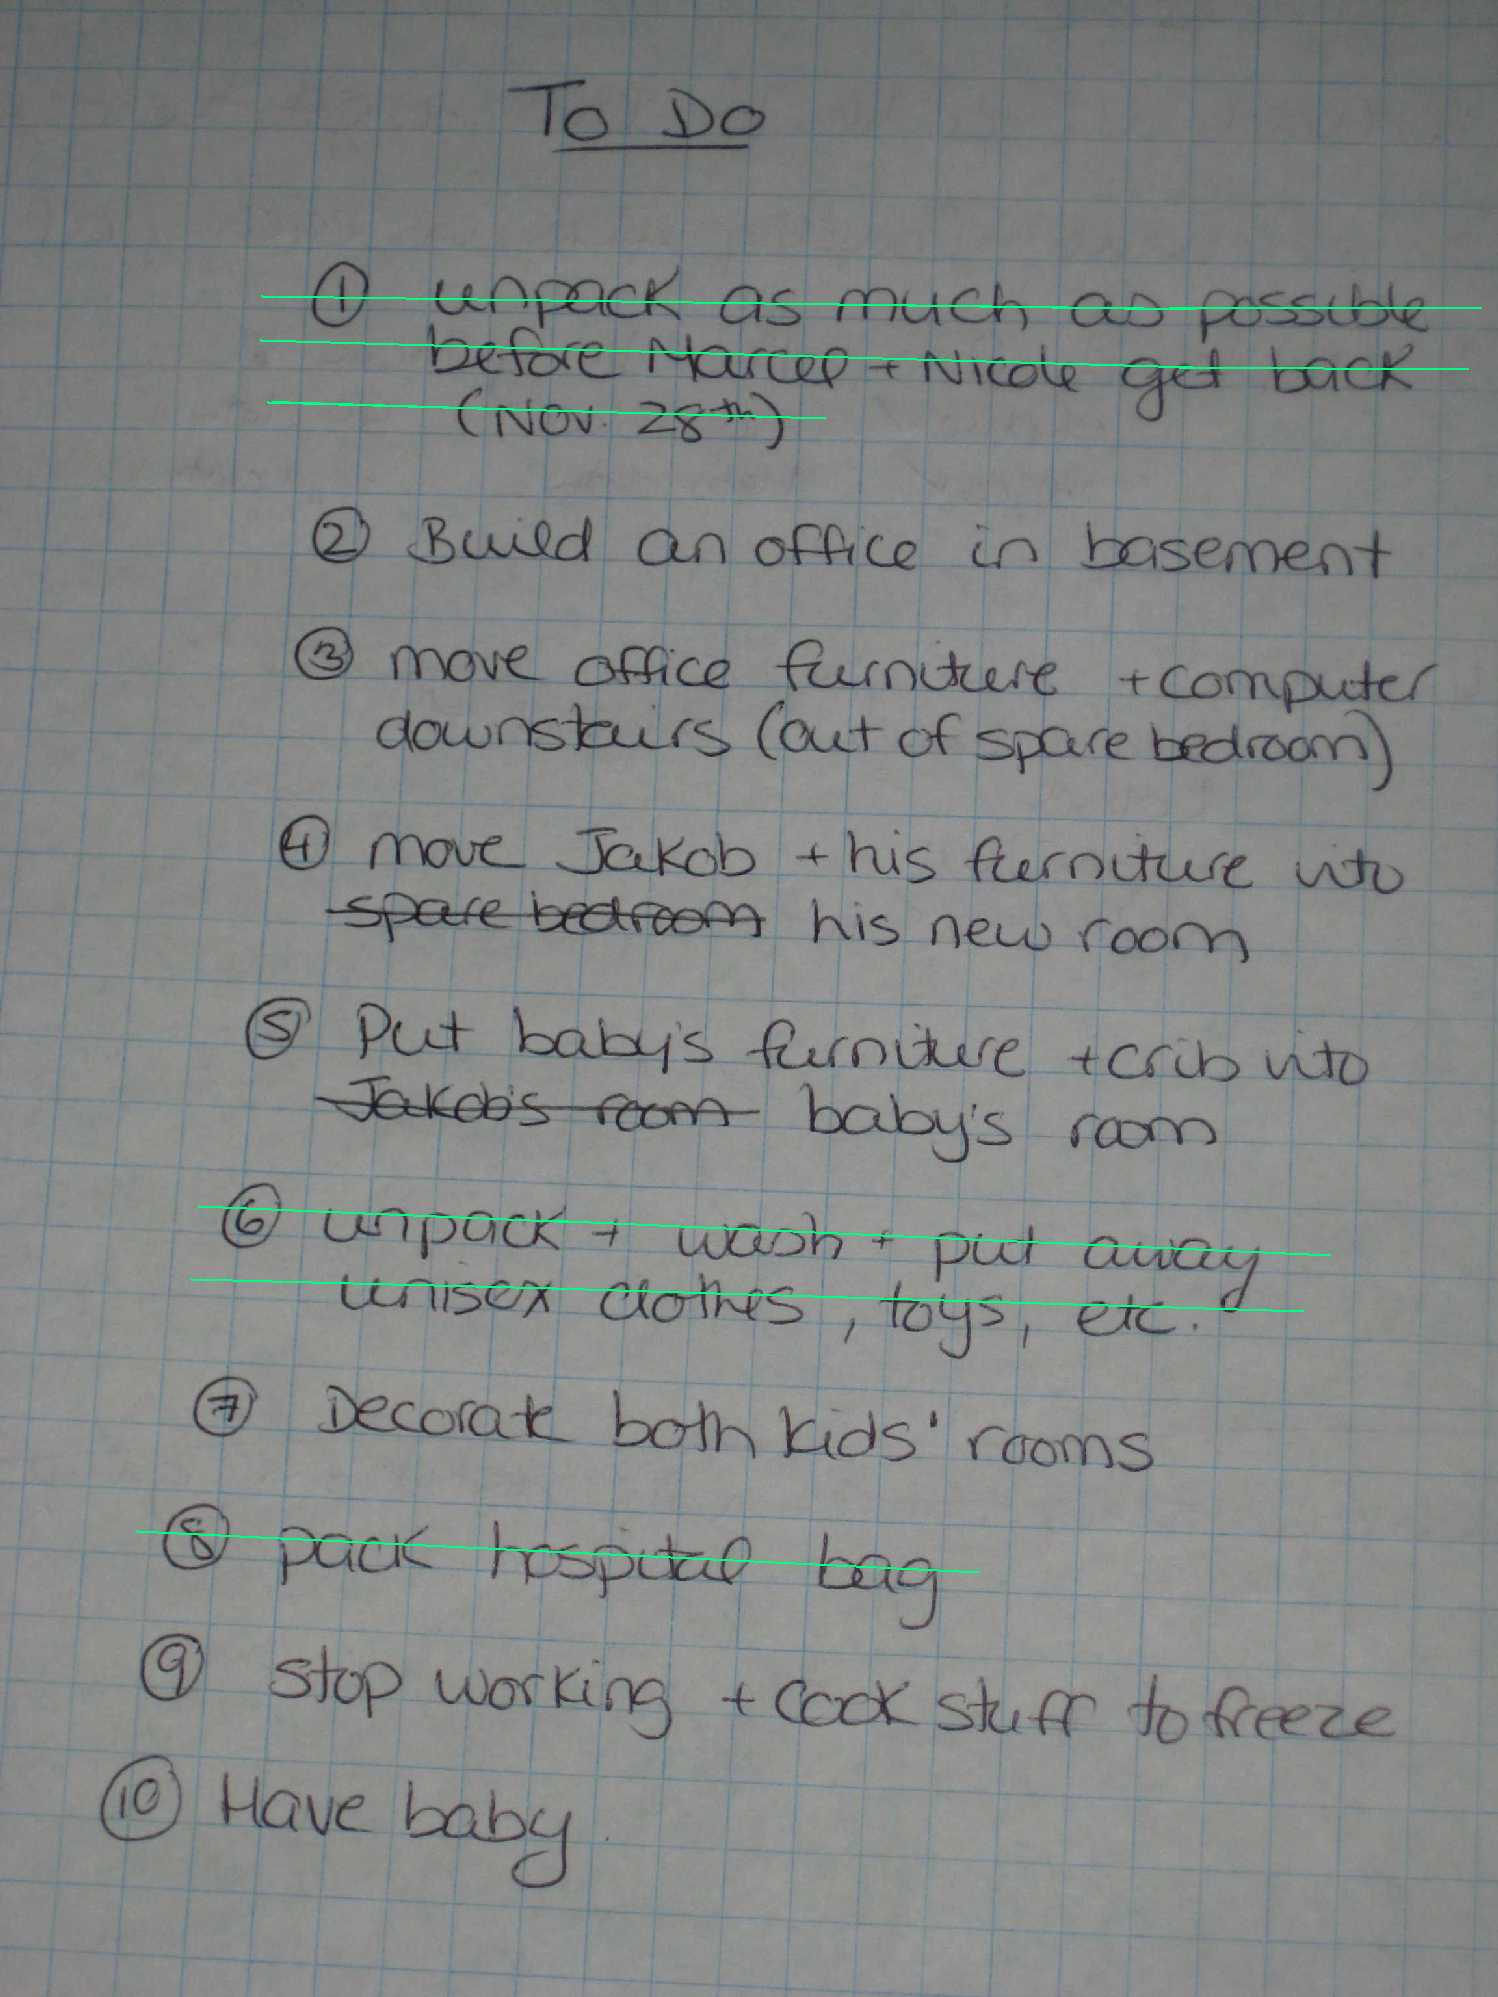 2008-12-08-to-do